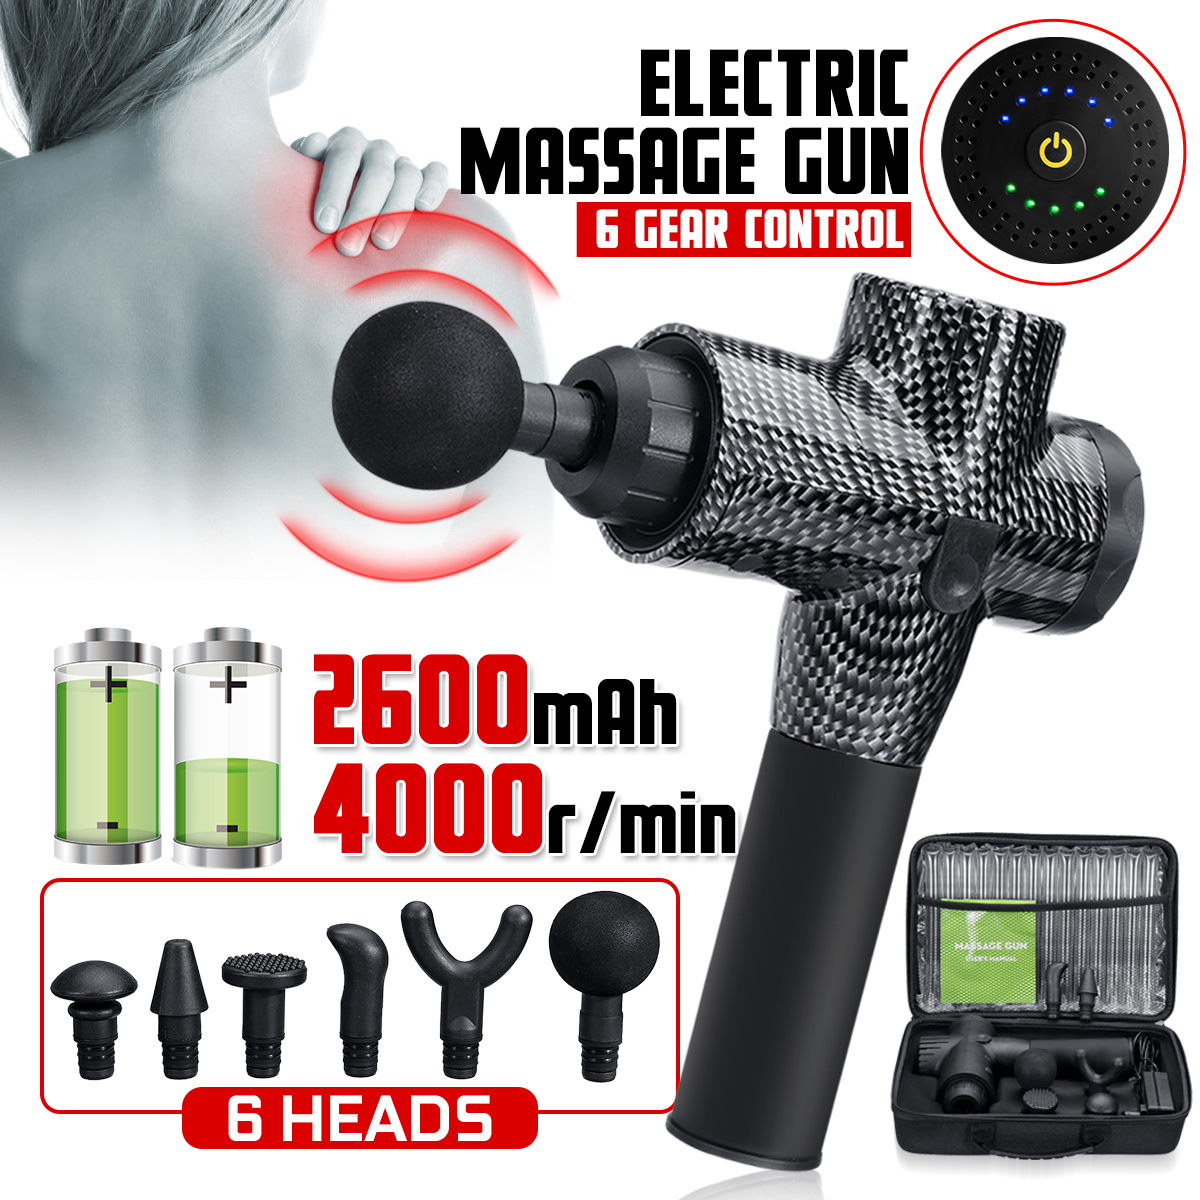 4000r/min LED Indicator Massage Guns 5 Gears Muscle Massager Pain Sport Massage Machine Relax Body Slimming Relief 6 Heads